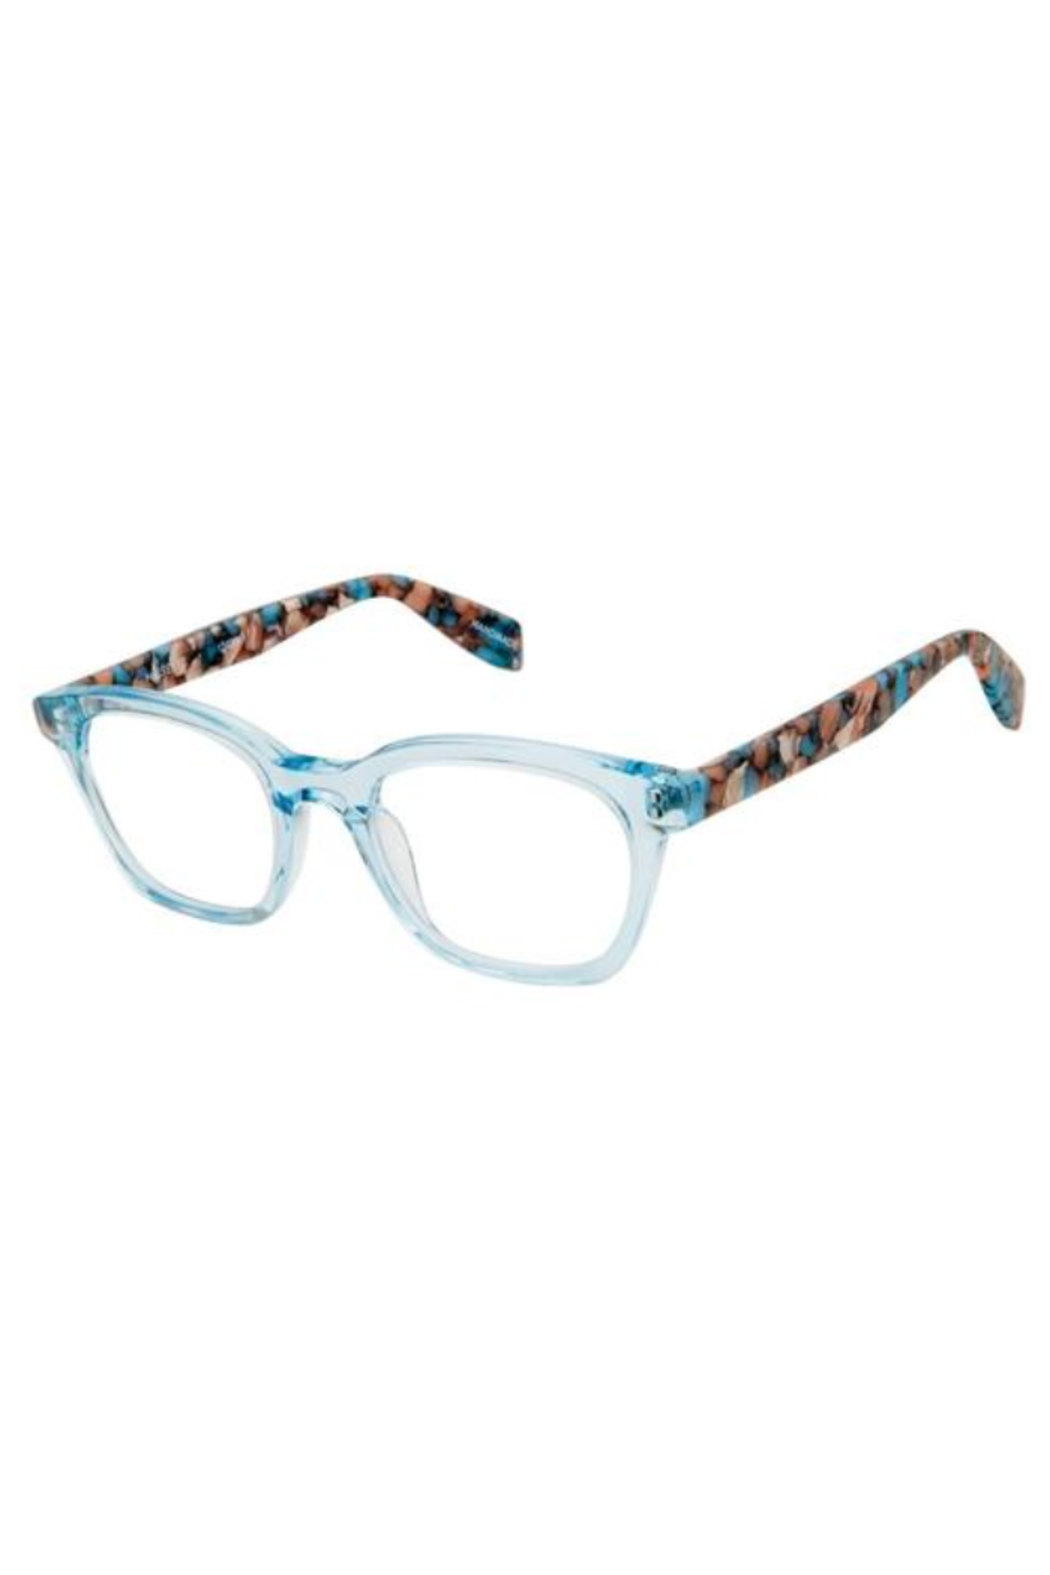 The Birds Nest HALSEY STREET OCEAN PEARLY +2.00 SCOJO READING GLASSES - Main Image